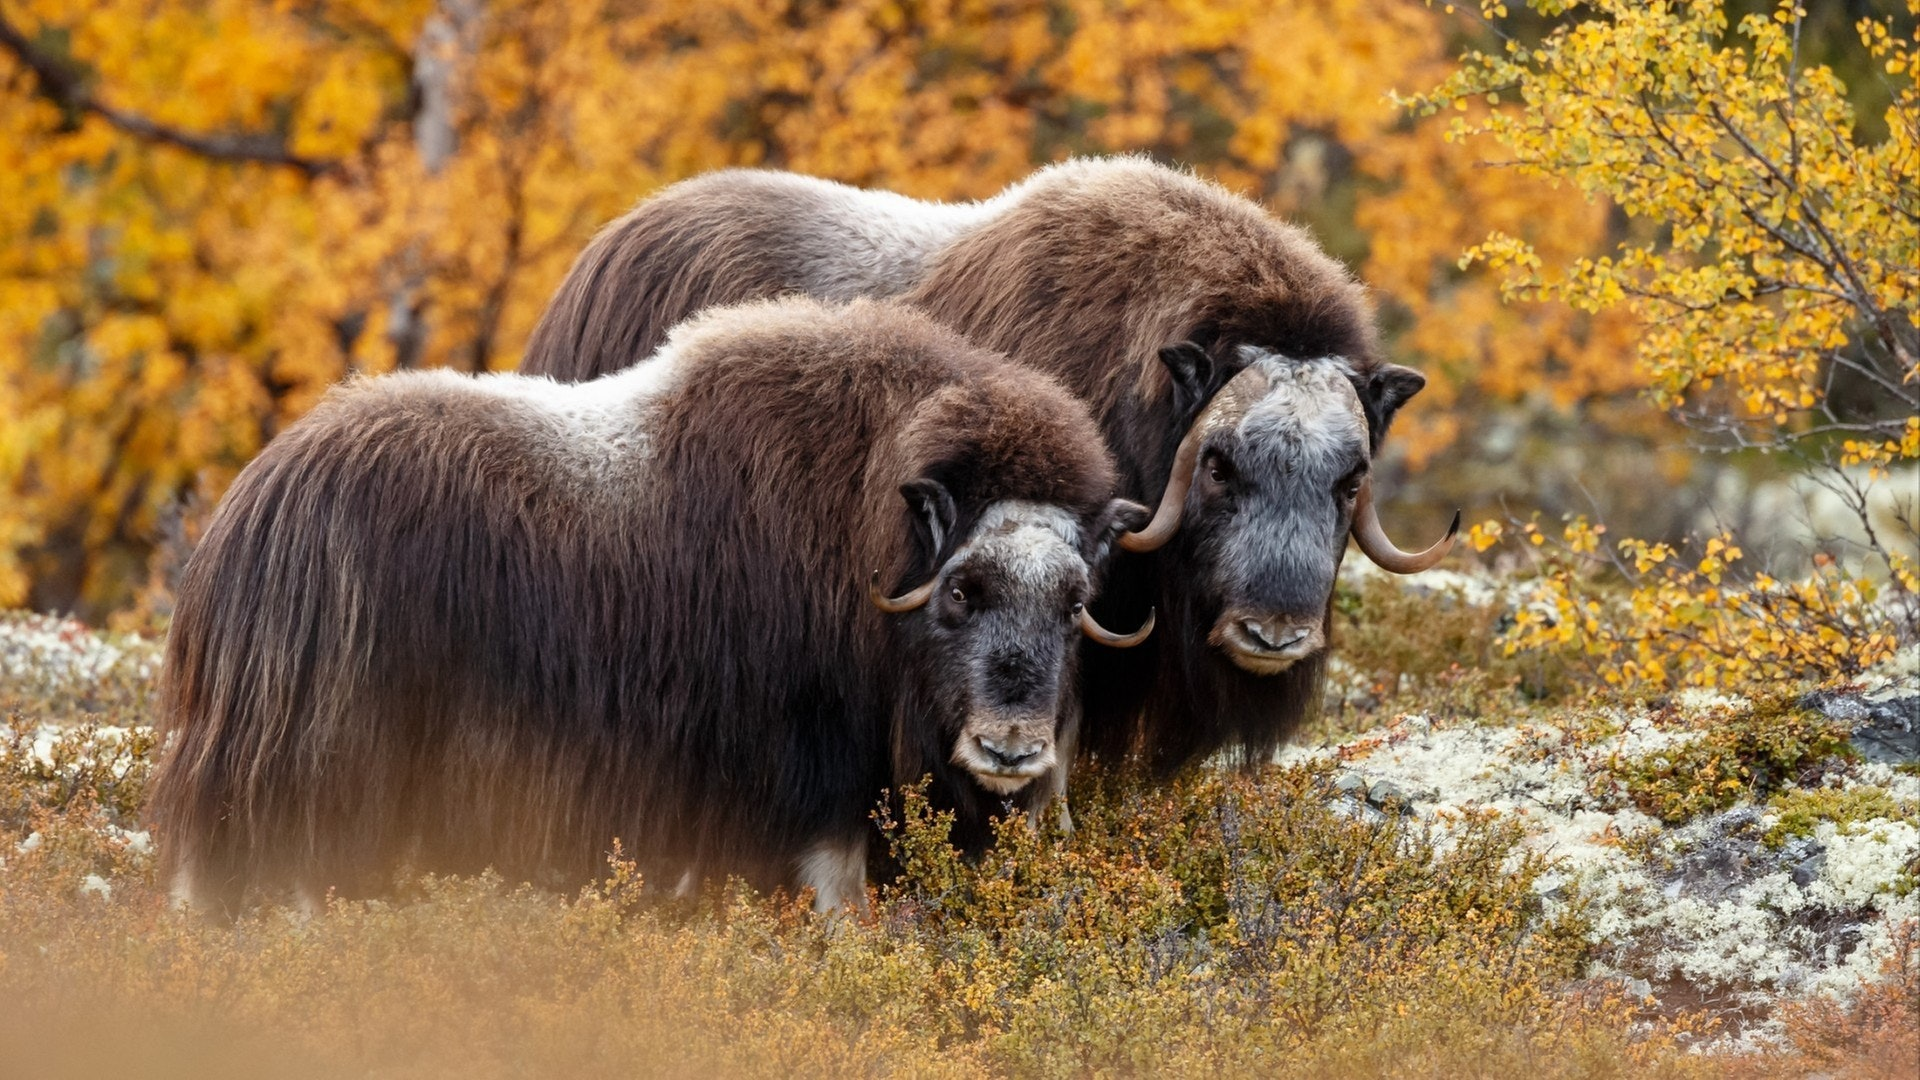 Musk-ox in nature in a autumn setting.